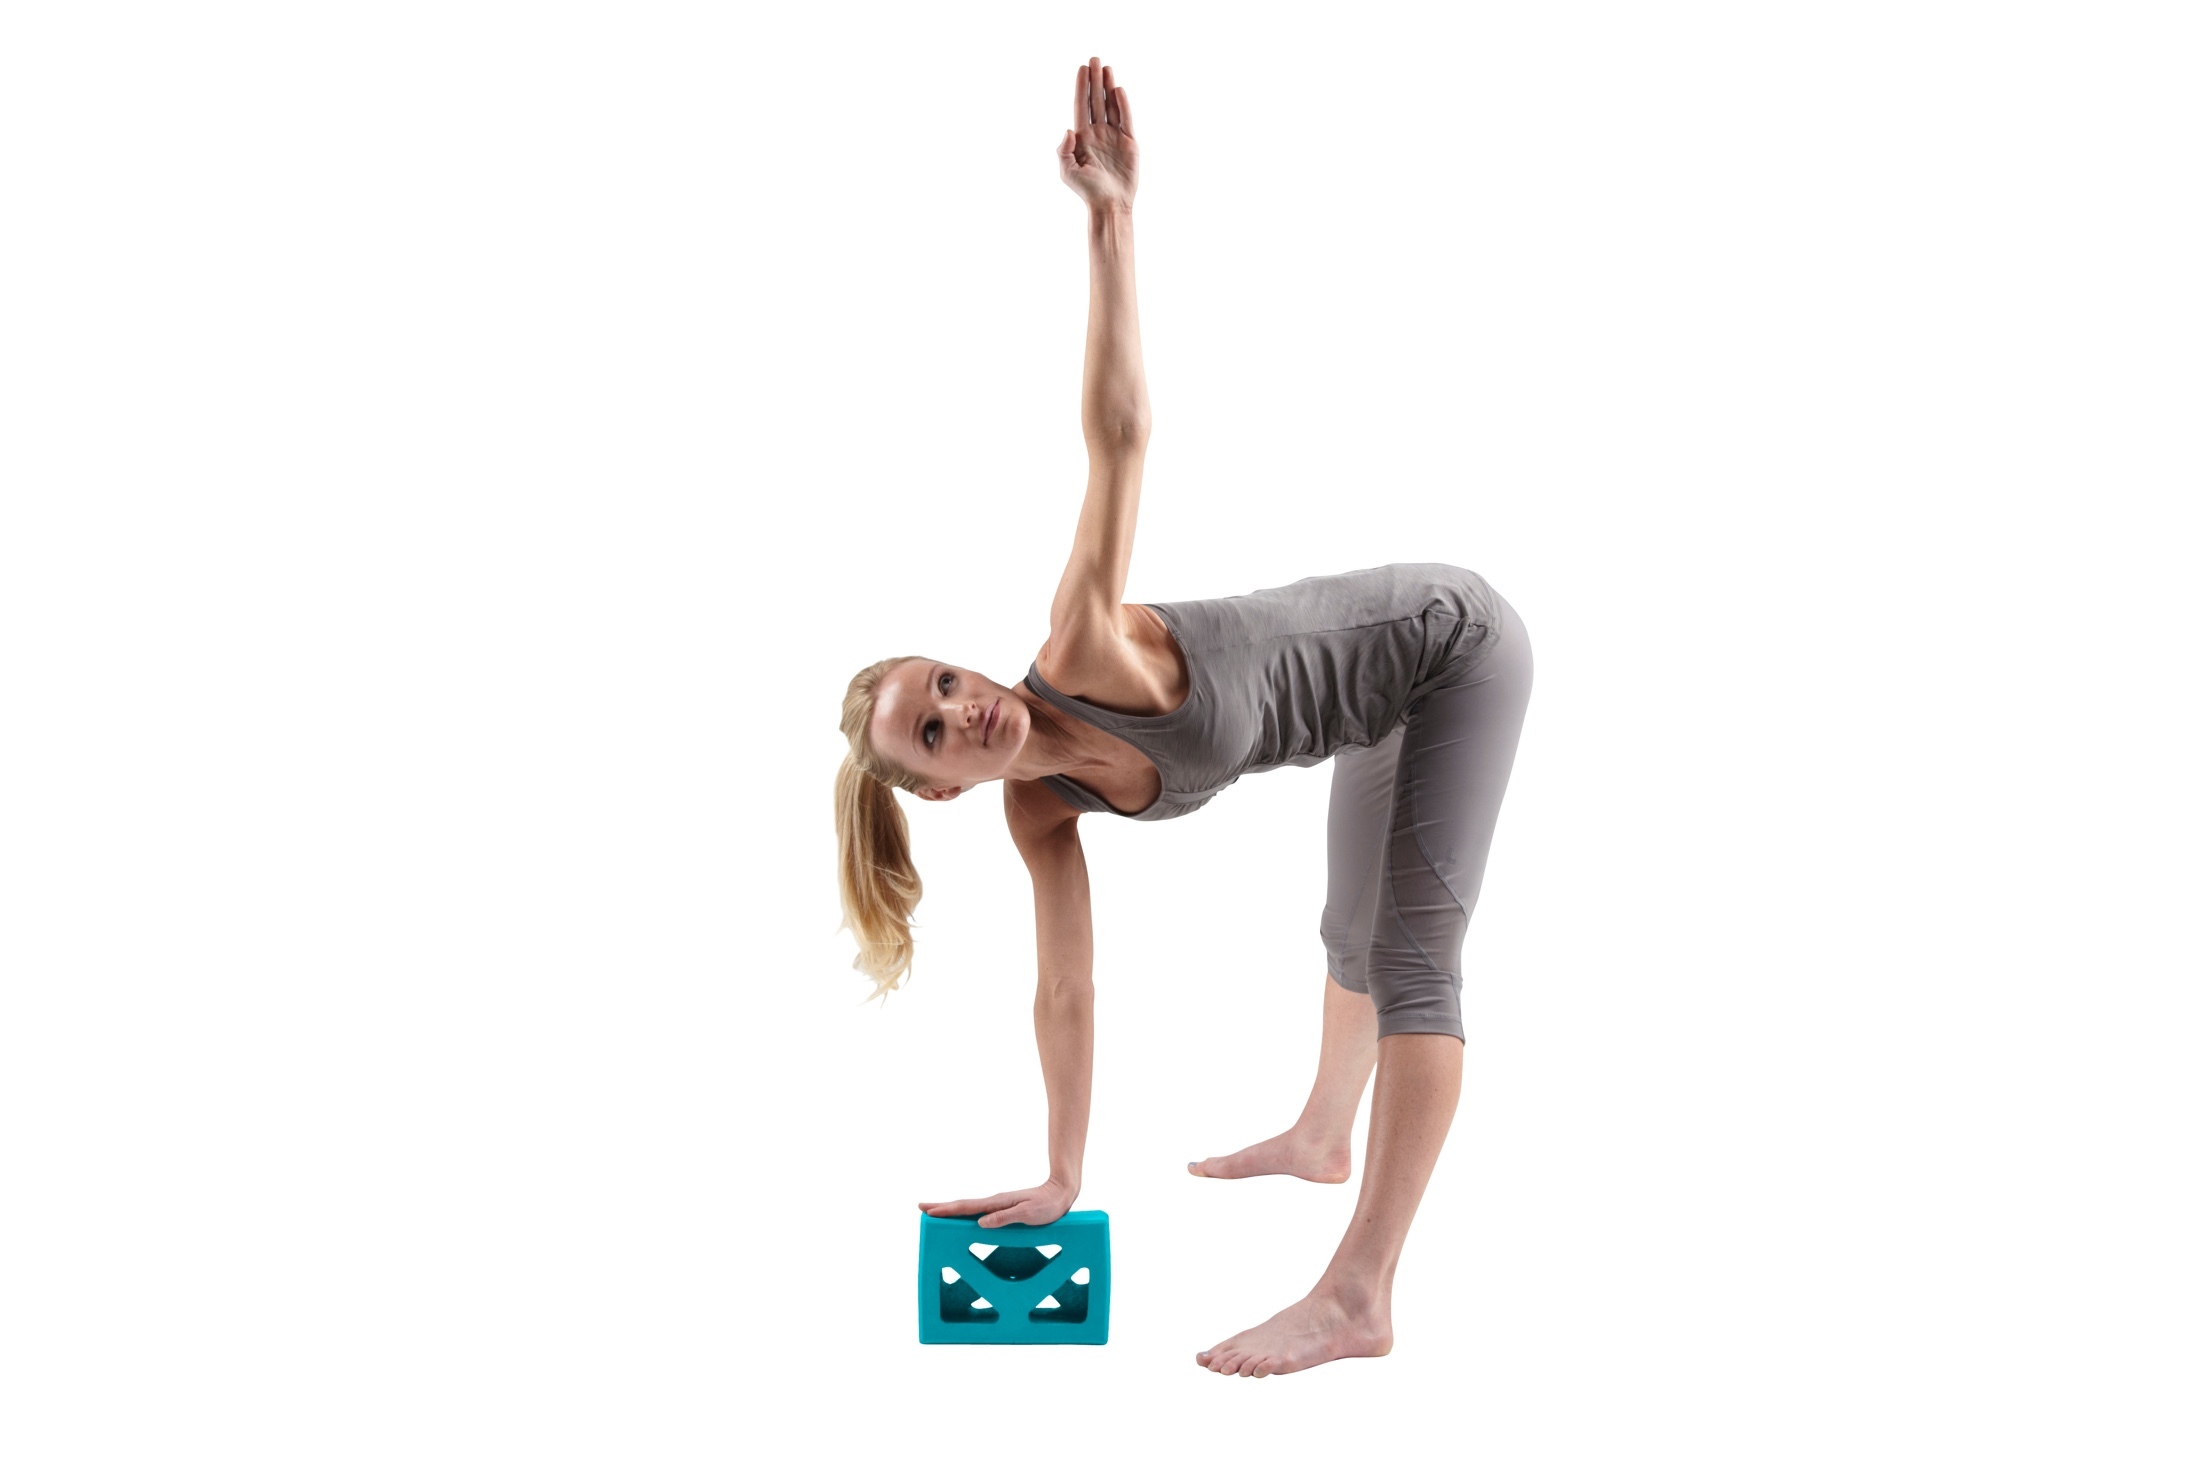 NordicTrack Yoga Grip Block gallery image 5